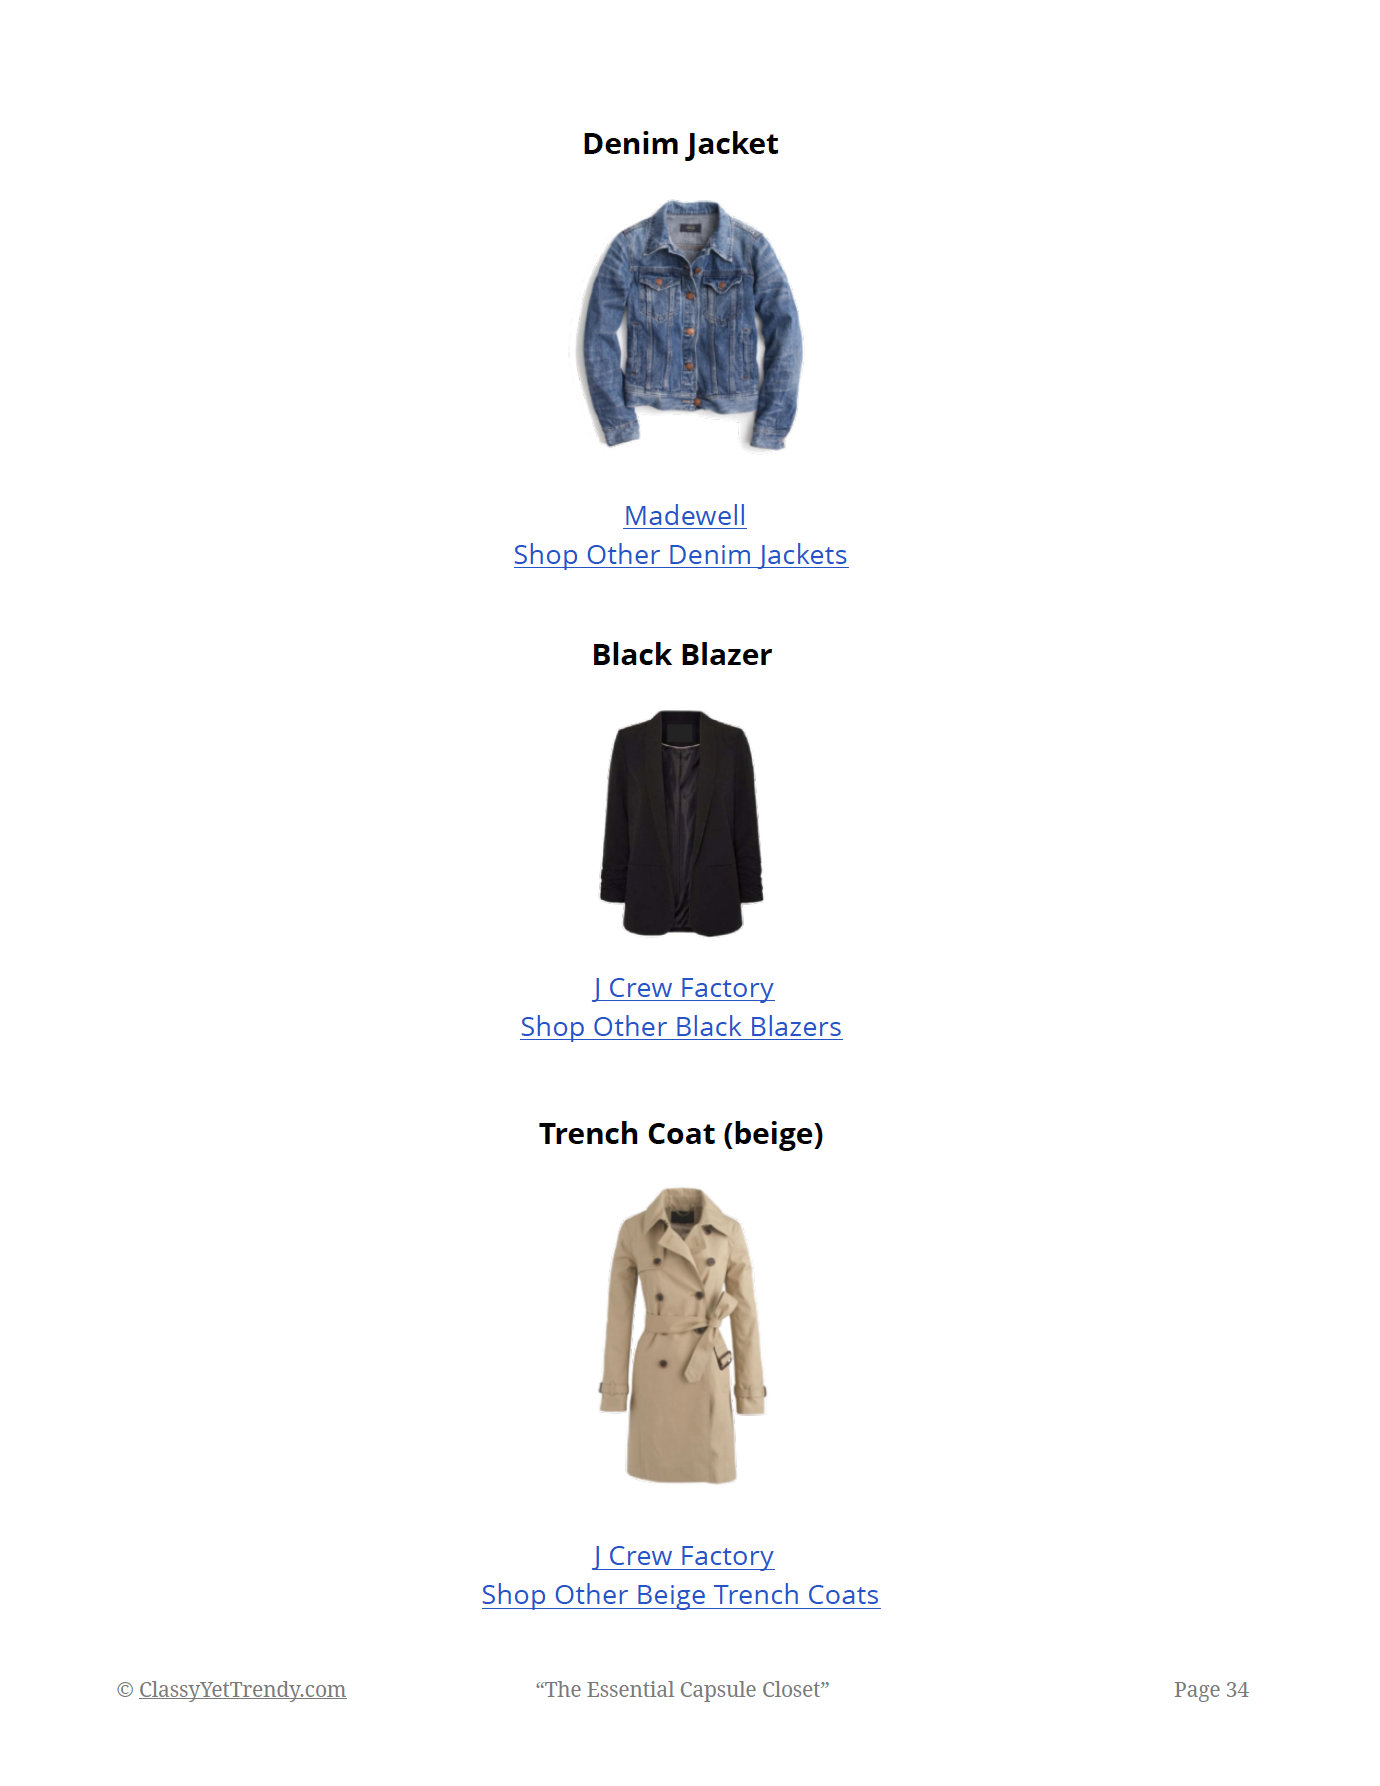 The Essential Capsule Closet - shopping links page